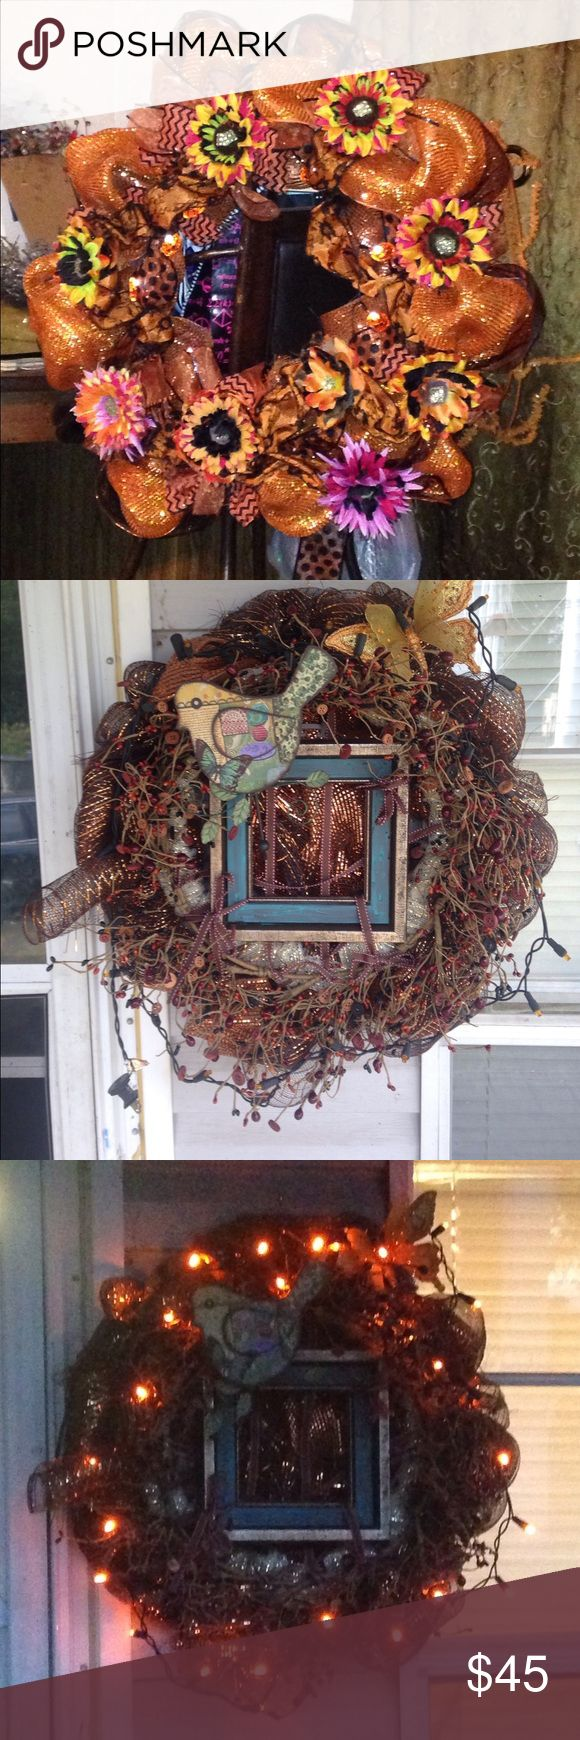 Handmade deco mesh wreaths. I  have made these and a few others (I will add them later) the first one is a fall or can be just for any time of the year? The next two are the same wreath made out of mesh and this beaded and buttoned wrapping vine with a bird and butterfly accent and lights. The last one is a Razorback wreath. Other